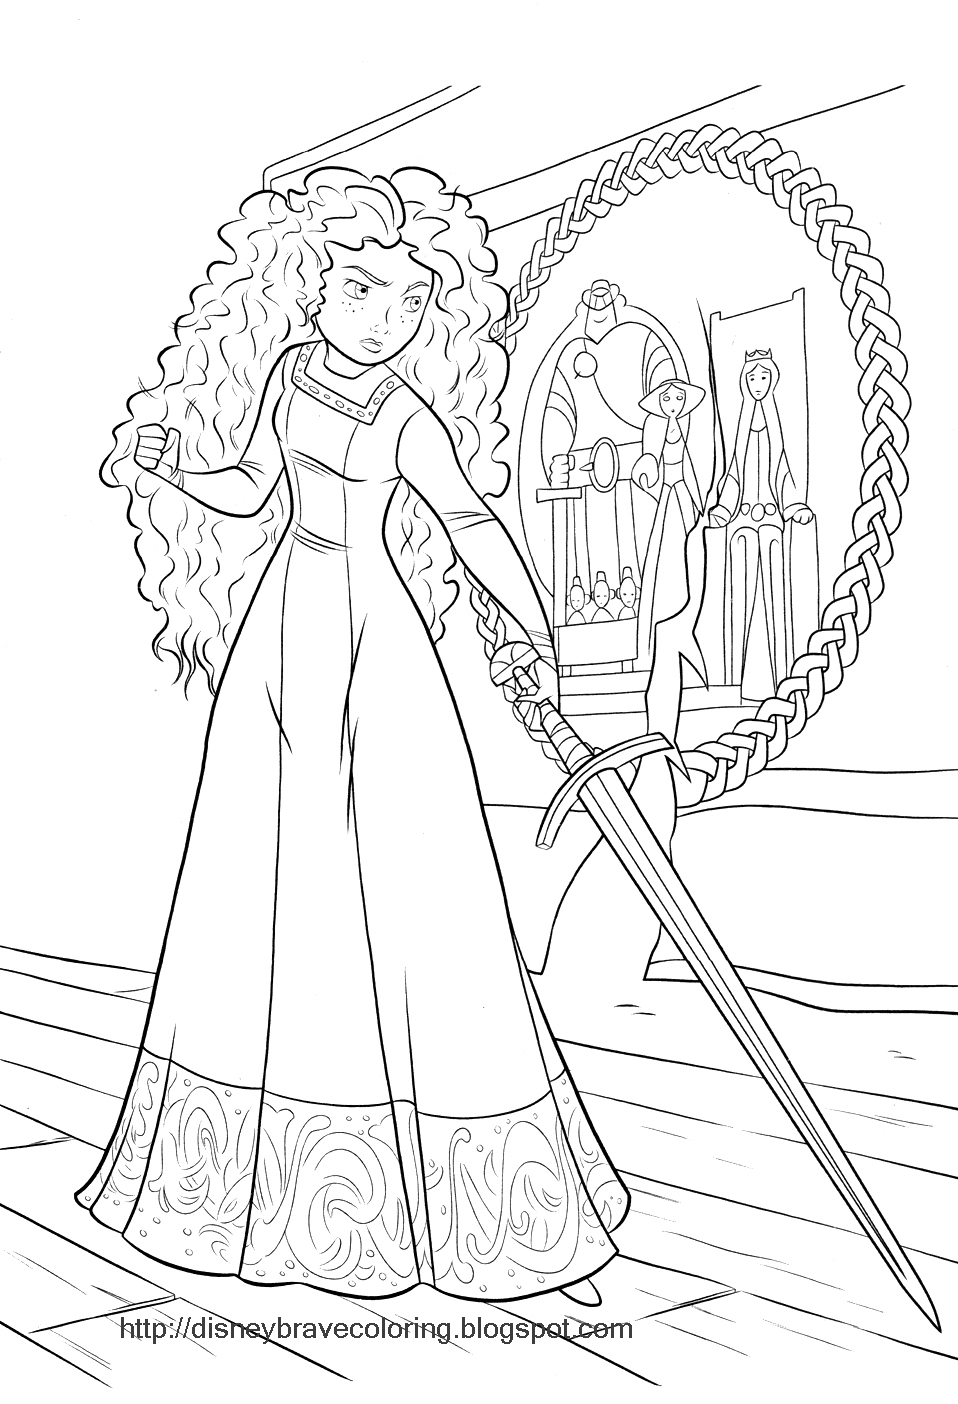 meridas face coloring pages - photo#32